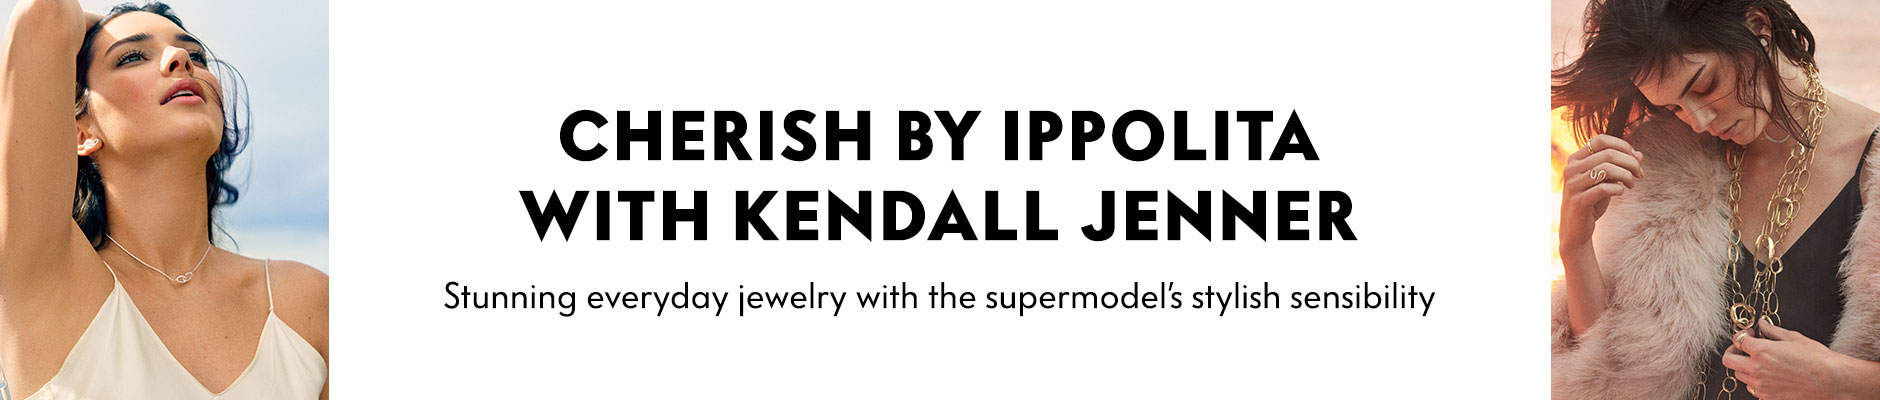 Cherish by Ippolita with Kendall Jenner - Stunning everyday jewelry with the supermodel's stylish sensibility